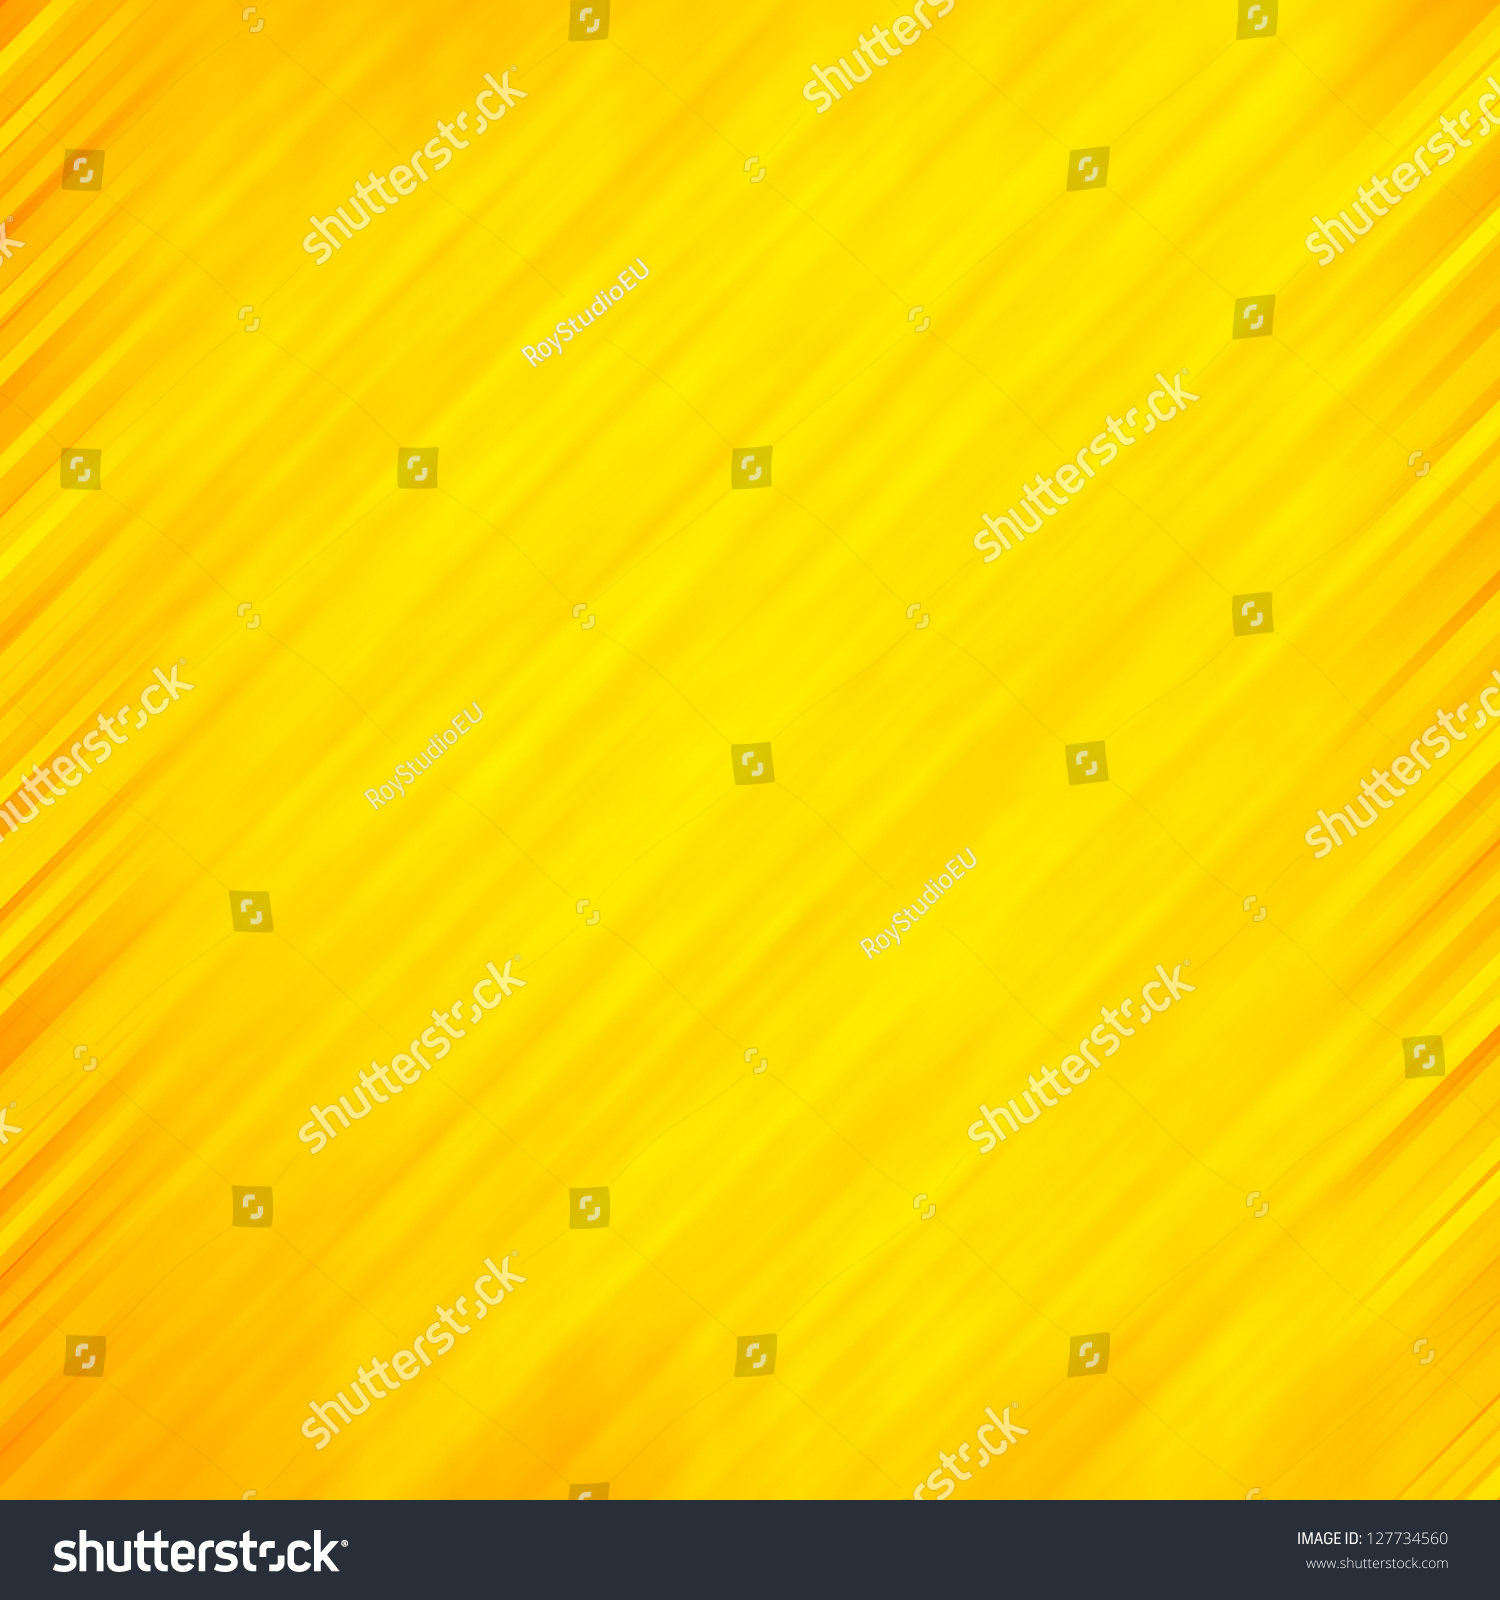 Yellow Abstract Background Oblique Lines Texture, May Use